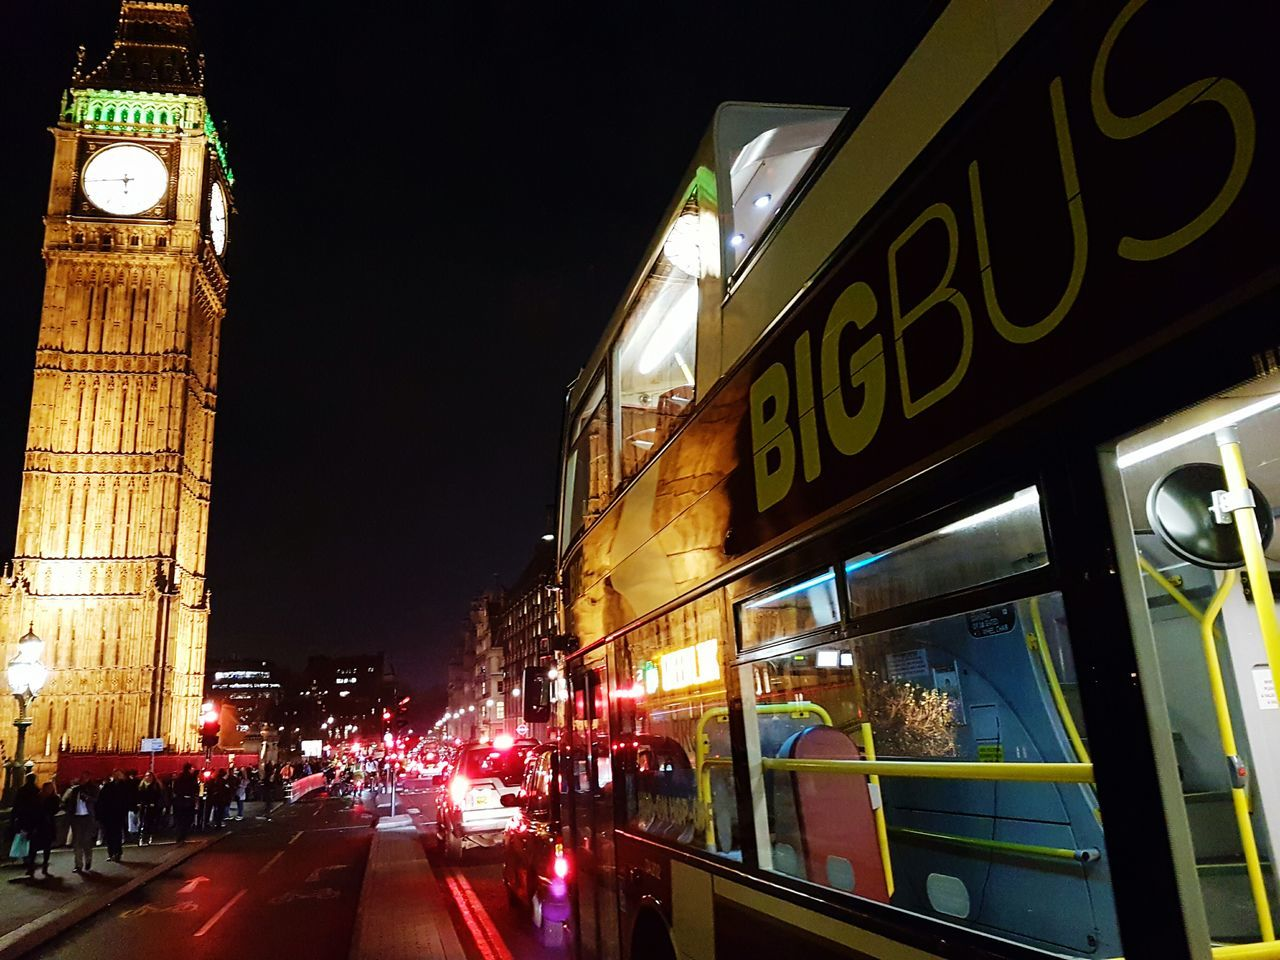 Big Ben or Big Bus? Illuminated City Travel Destinations Night Travel Tourism Clock Tower Transportation Architecture Nightlife Outdoors London Big Ben Bus